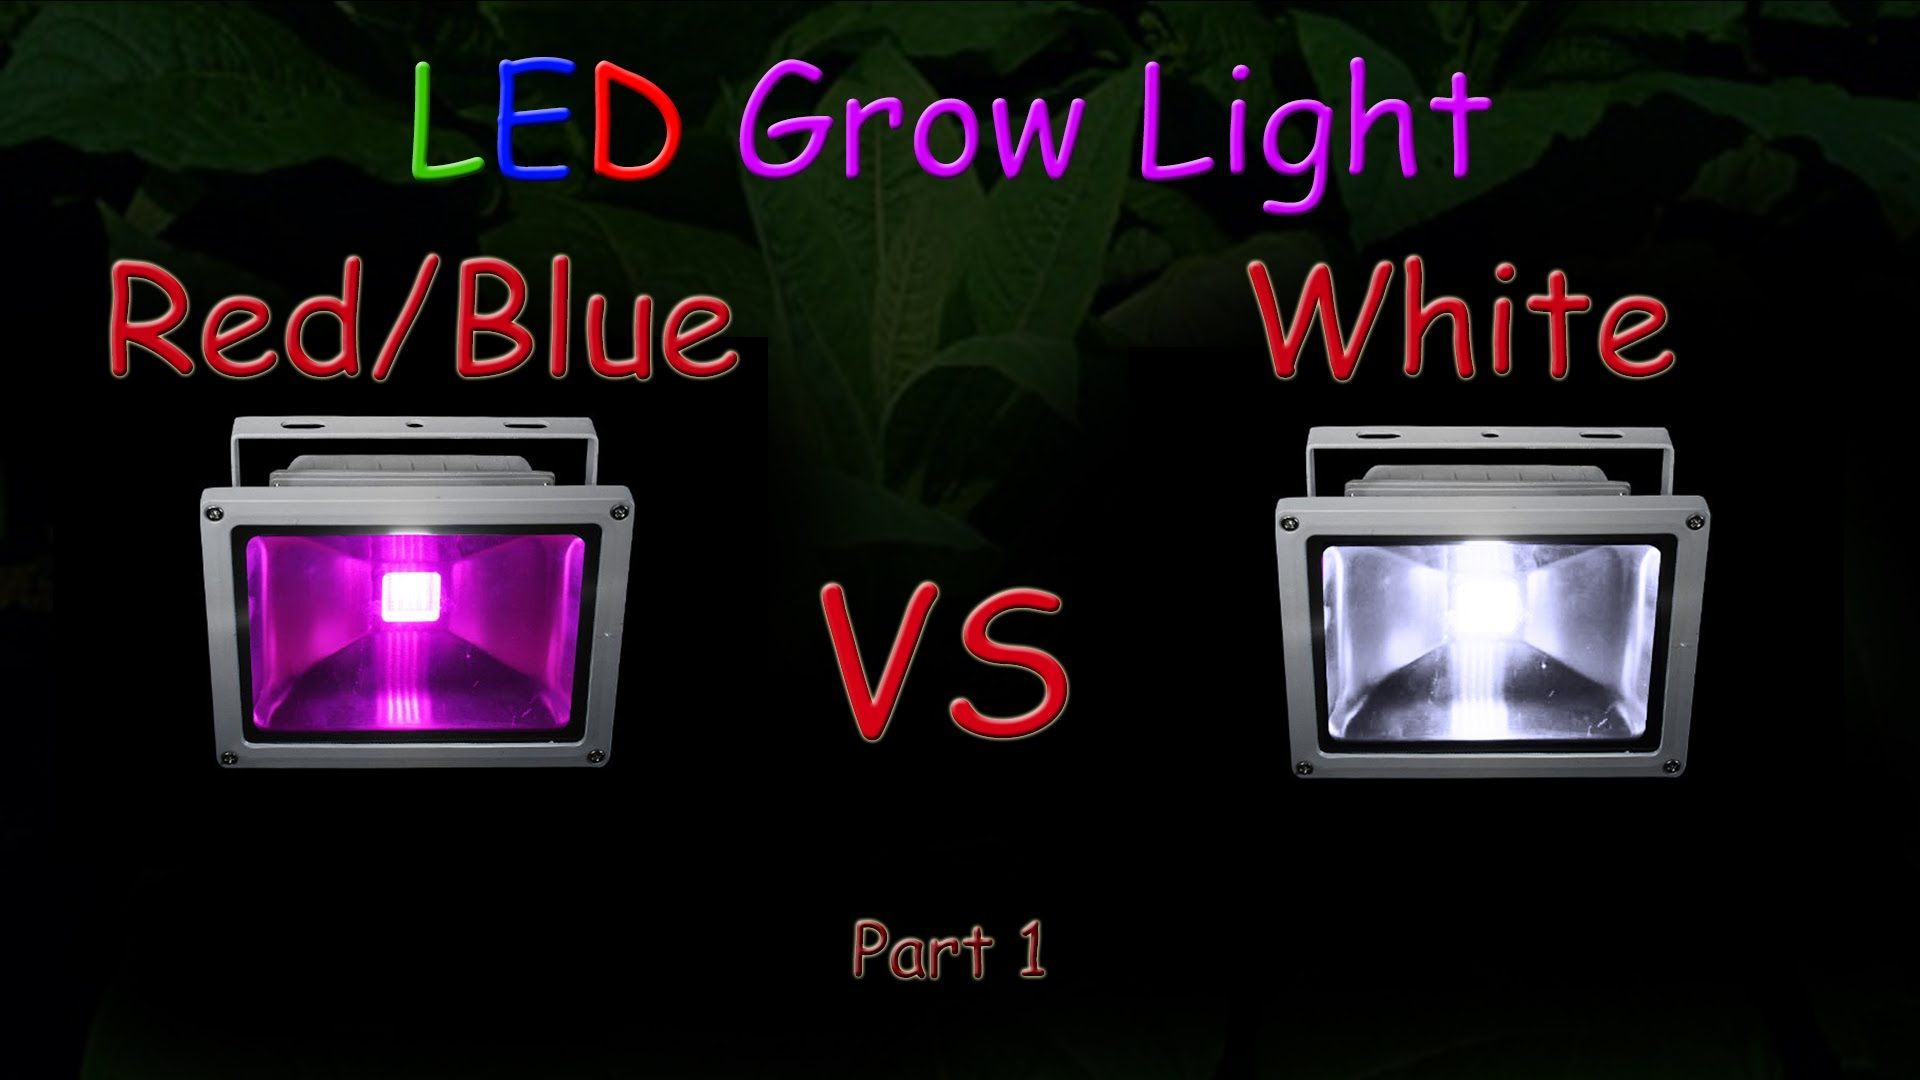 White Led Vs Red Blue Led Grow Light Grow Test Part 1 Educational Gardens Led Grow Lights Grow Lights Red Blue